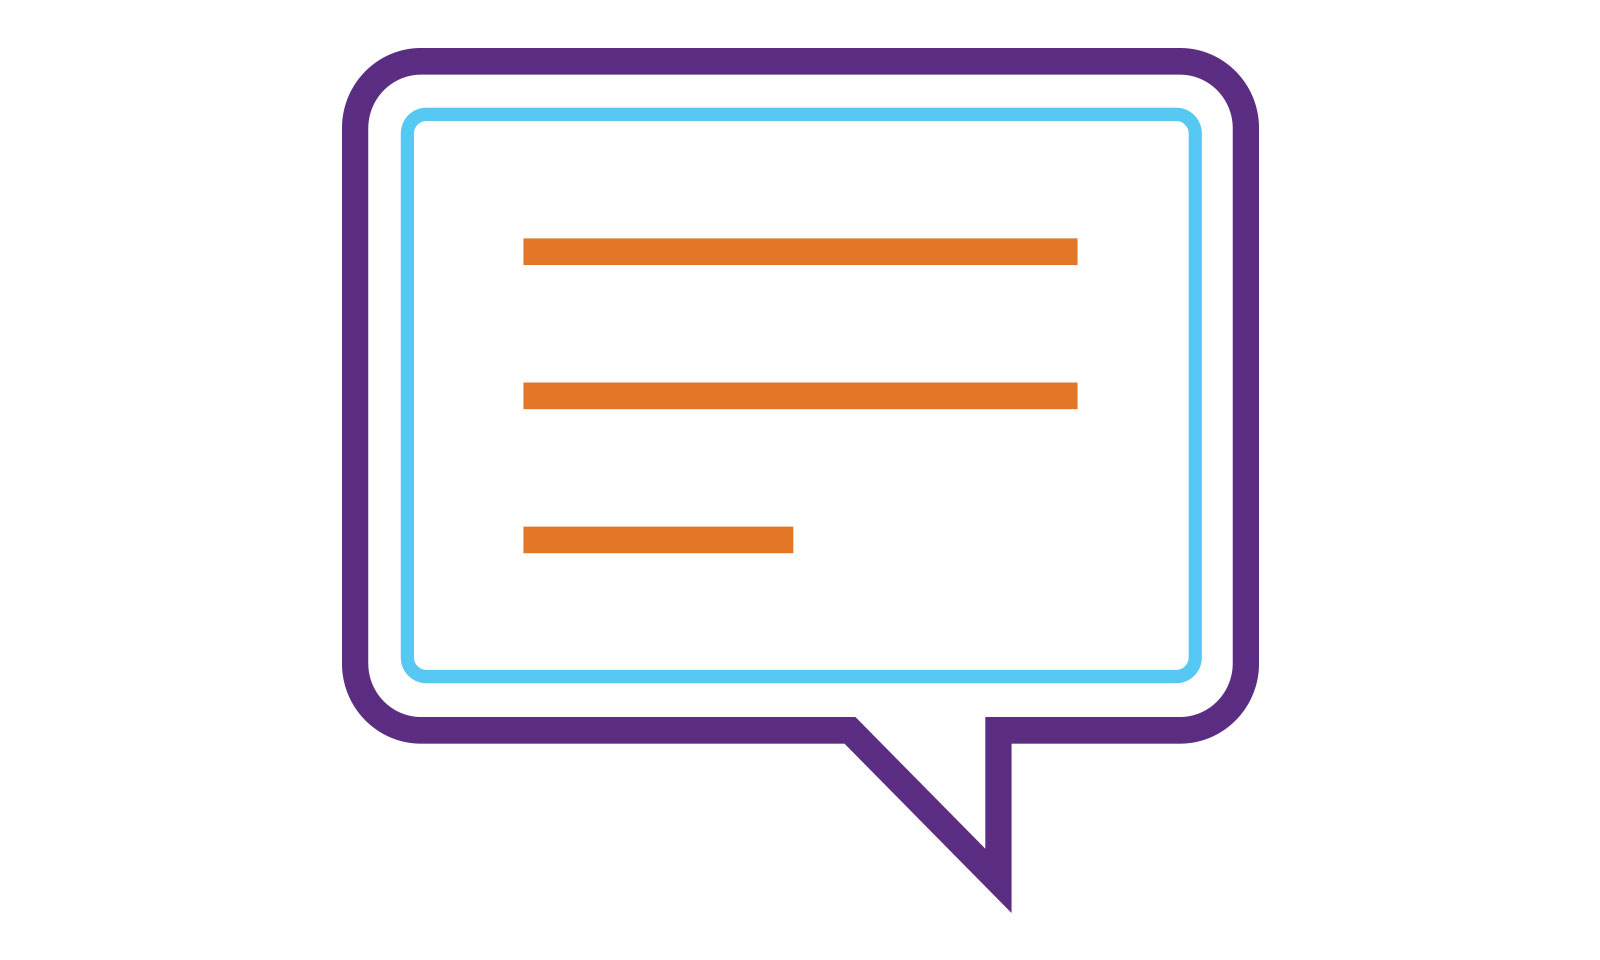 Web AppSec interview questions every company should ask | Synopsys